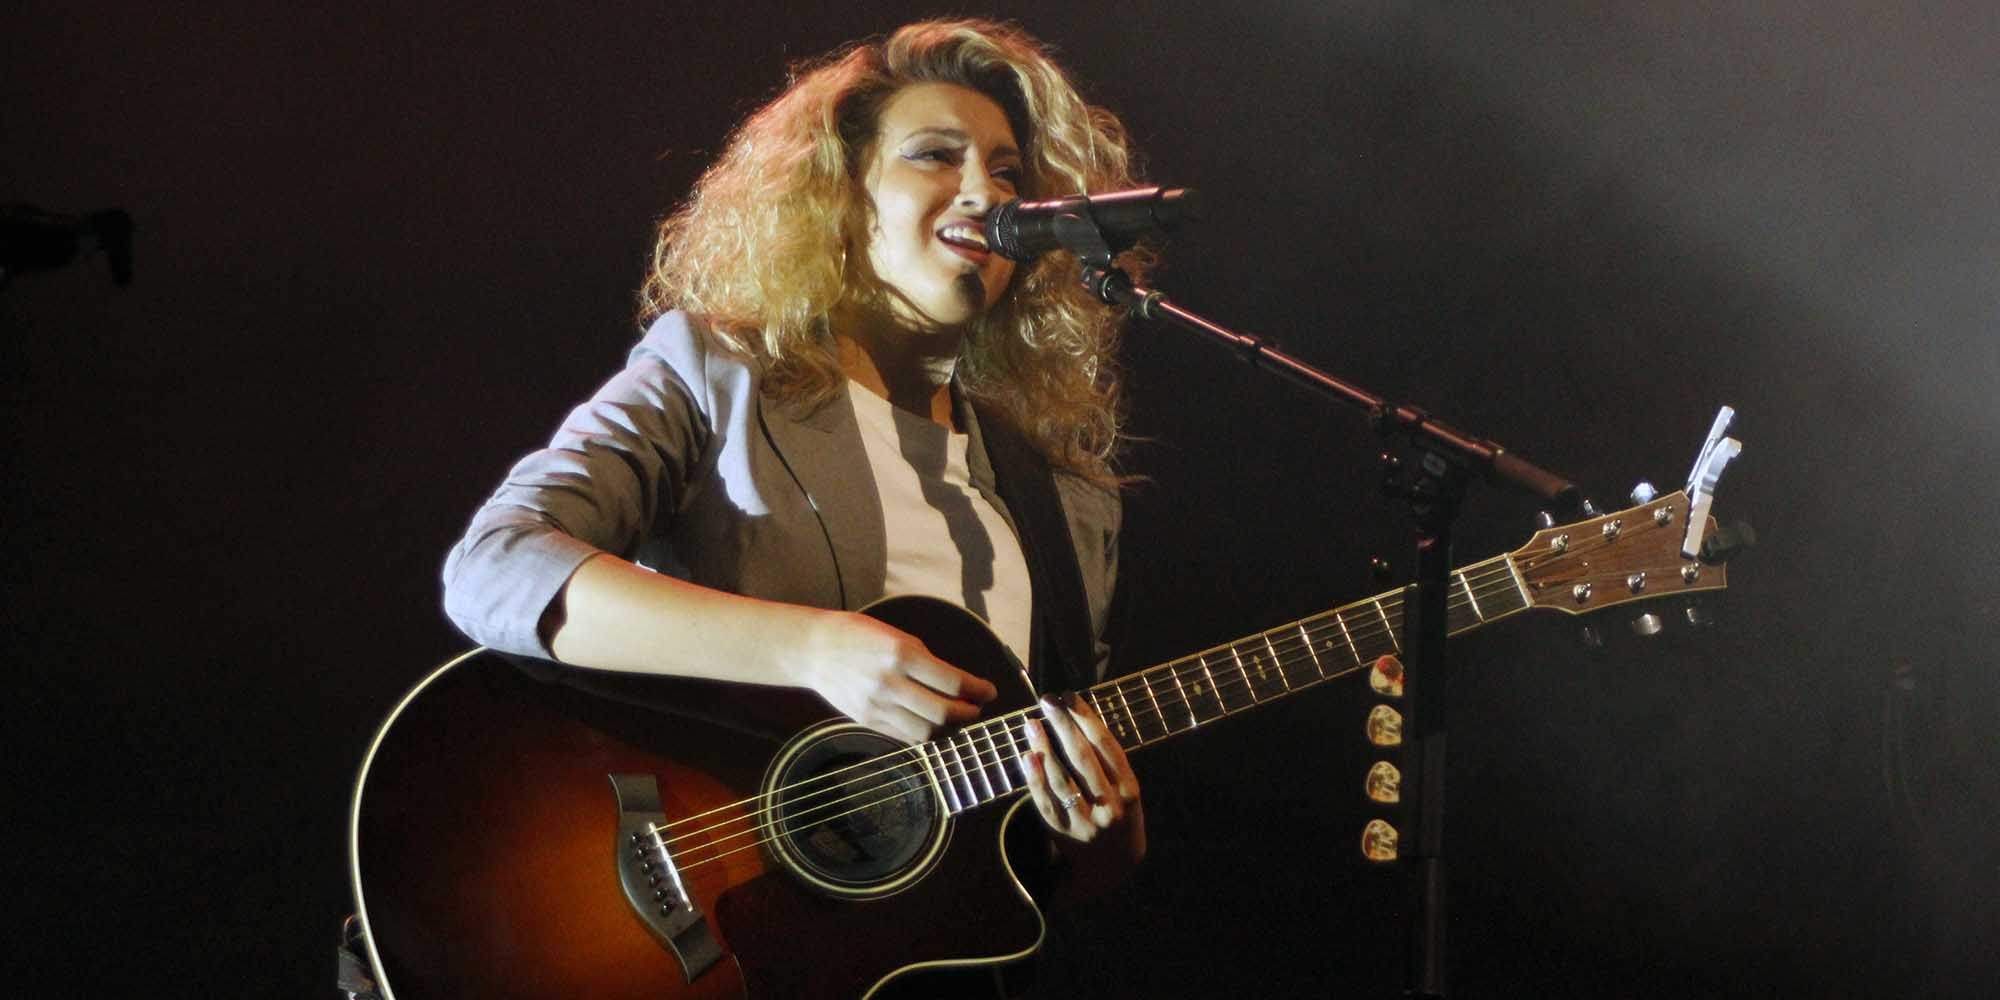 Tori Kelly Palace Theatre St. Paul, MN March 21st 2019 Acoustic Sessions